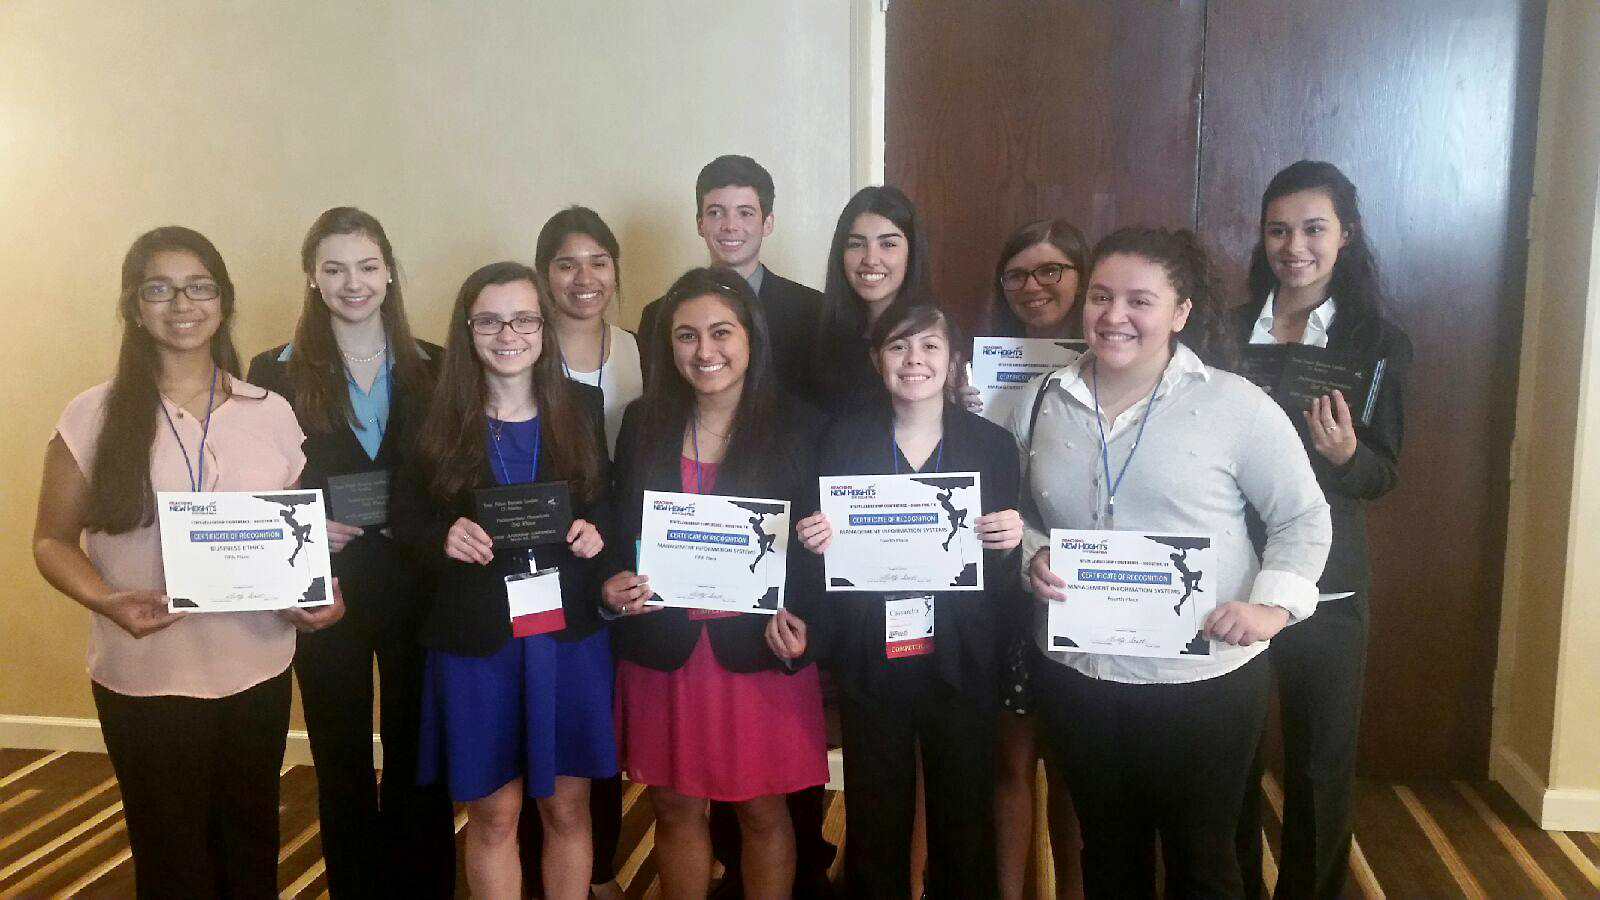 12 South competitors advance to FBLA National Leadership Conference